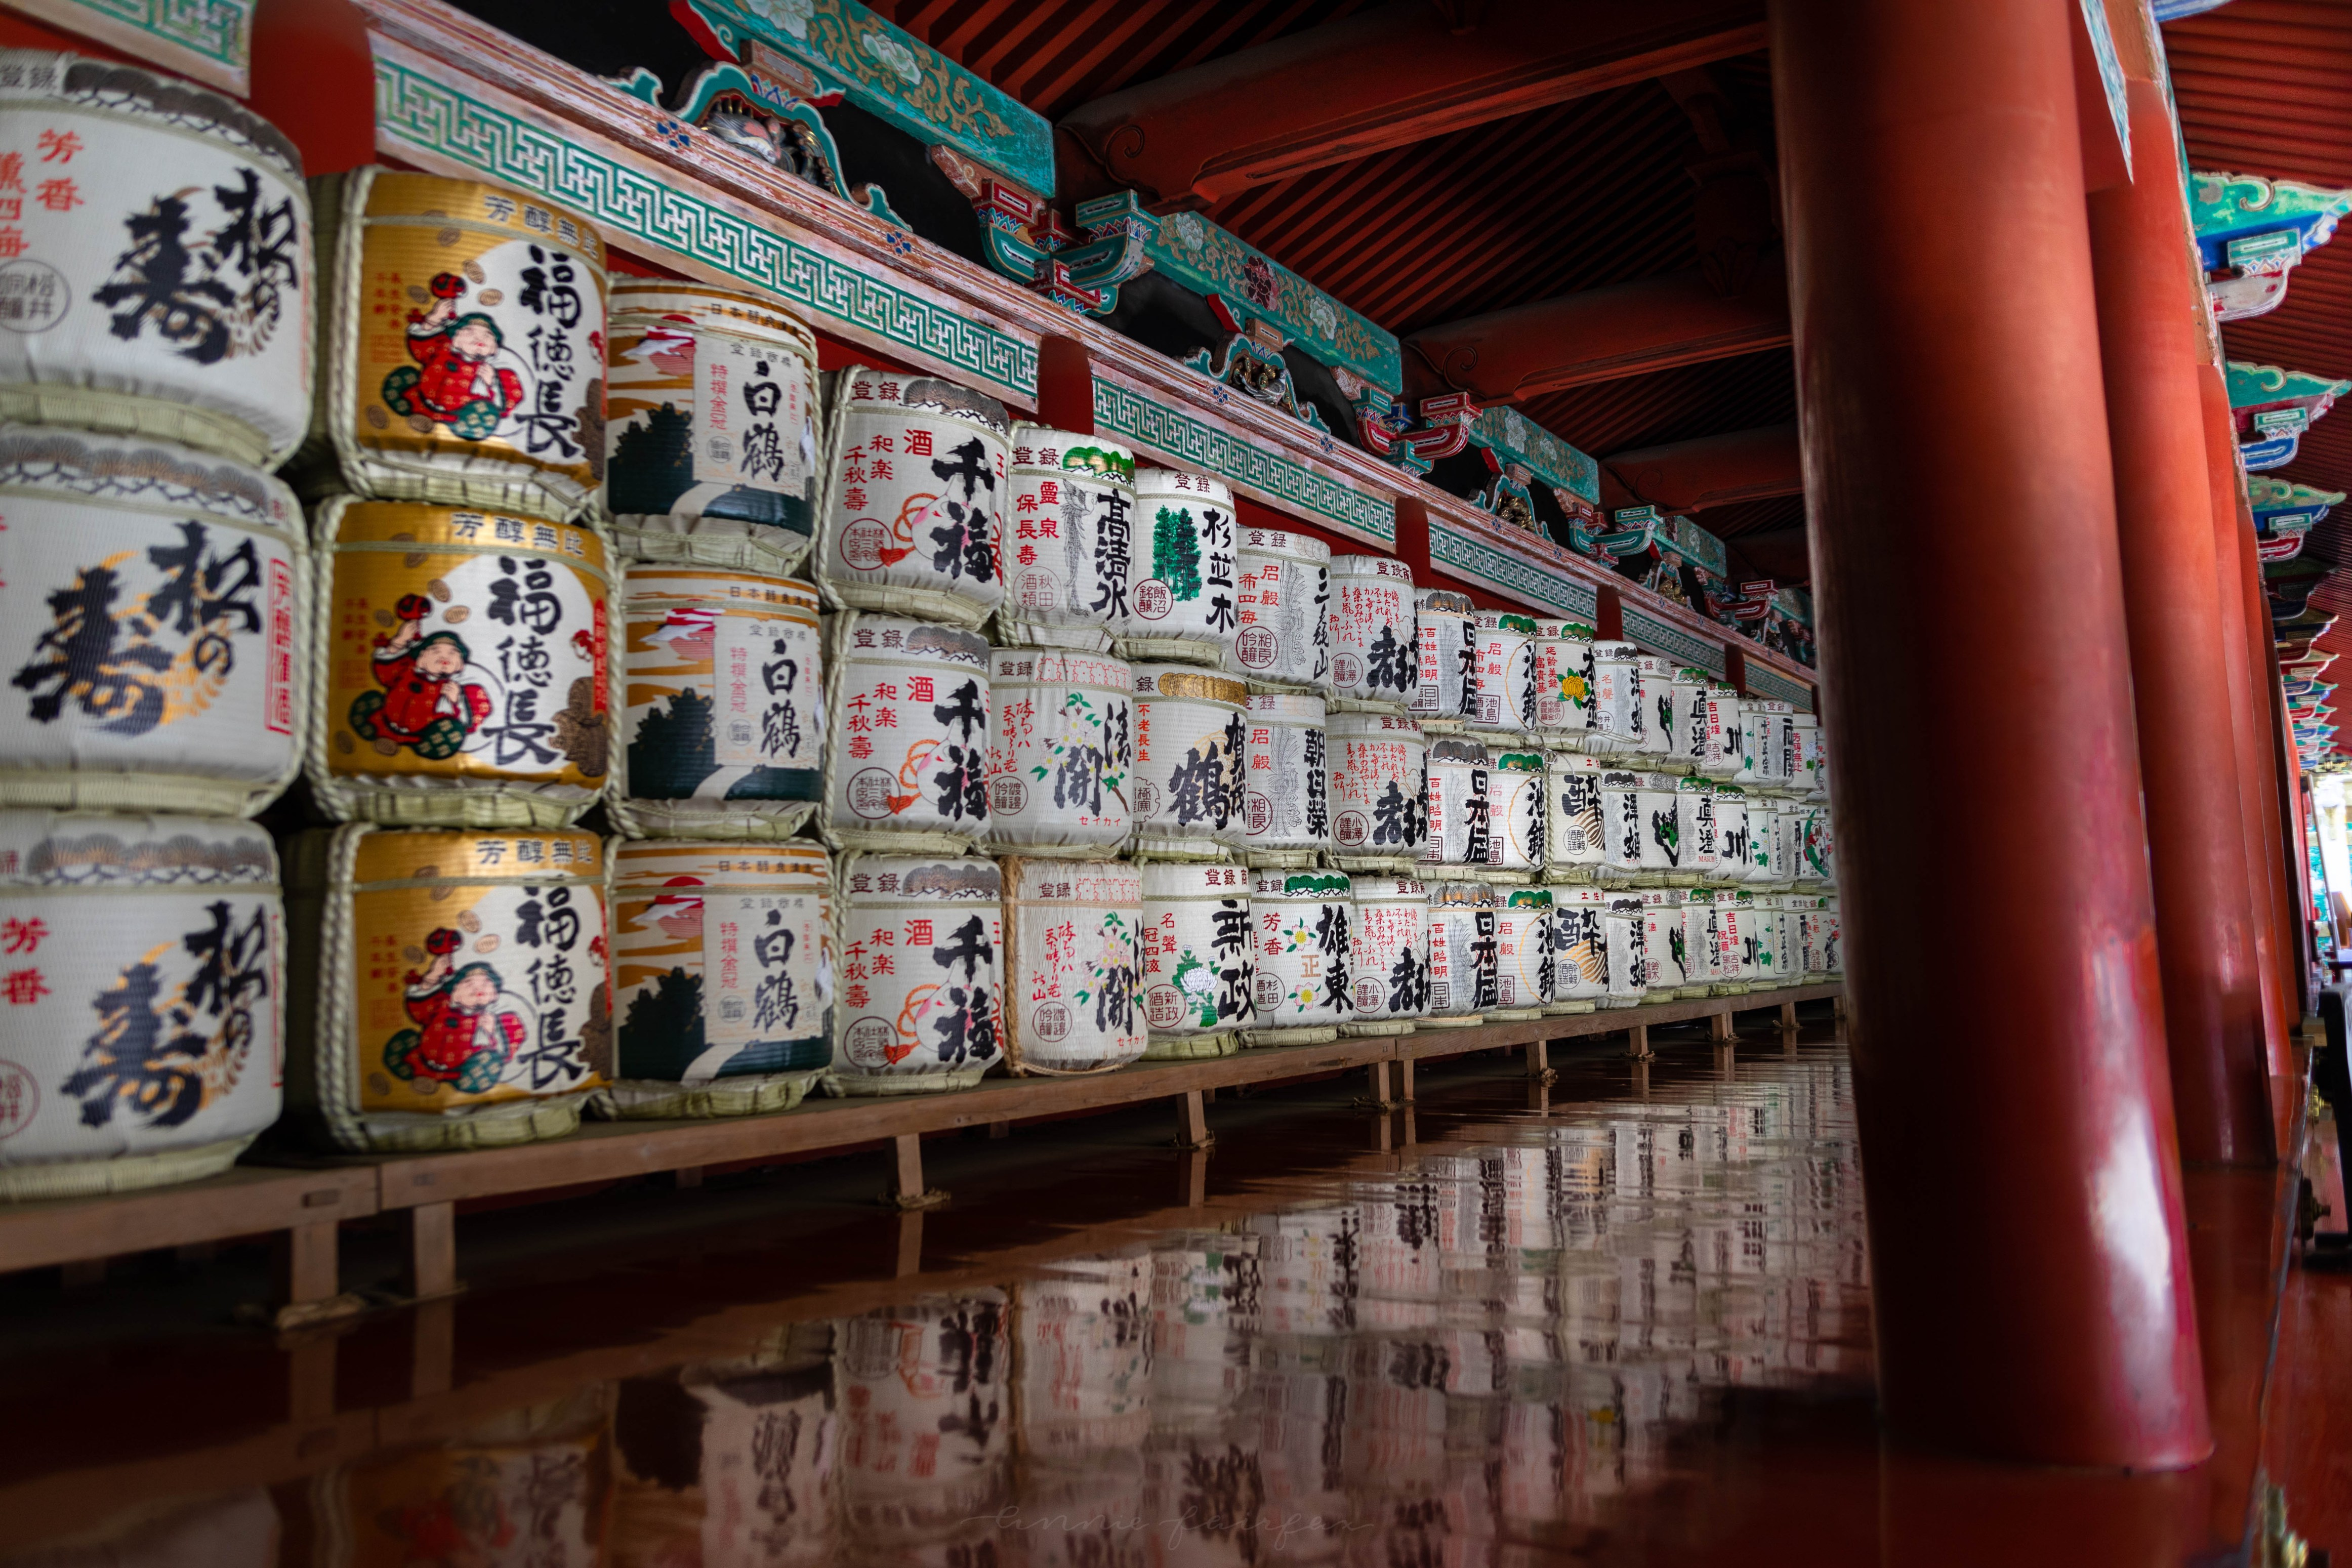 Sake Barrels Temples and Shrines in Nikko, Japan, the Ultimate Travel Guide Written, Researched, and Photographed by Travel Writer & Photographer Annie Fairfax